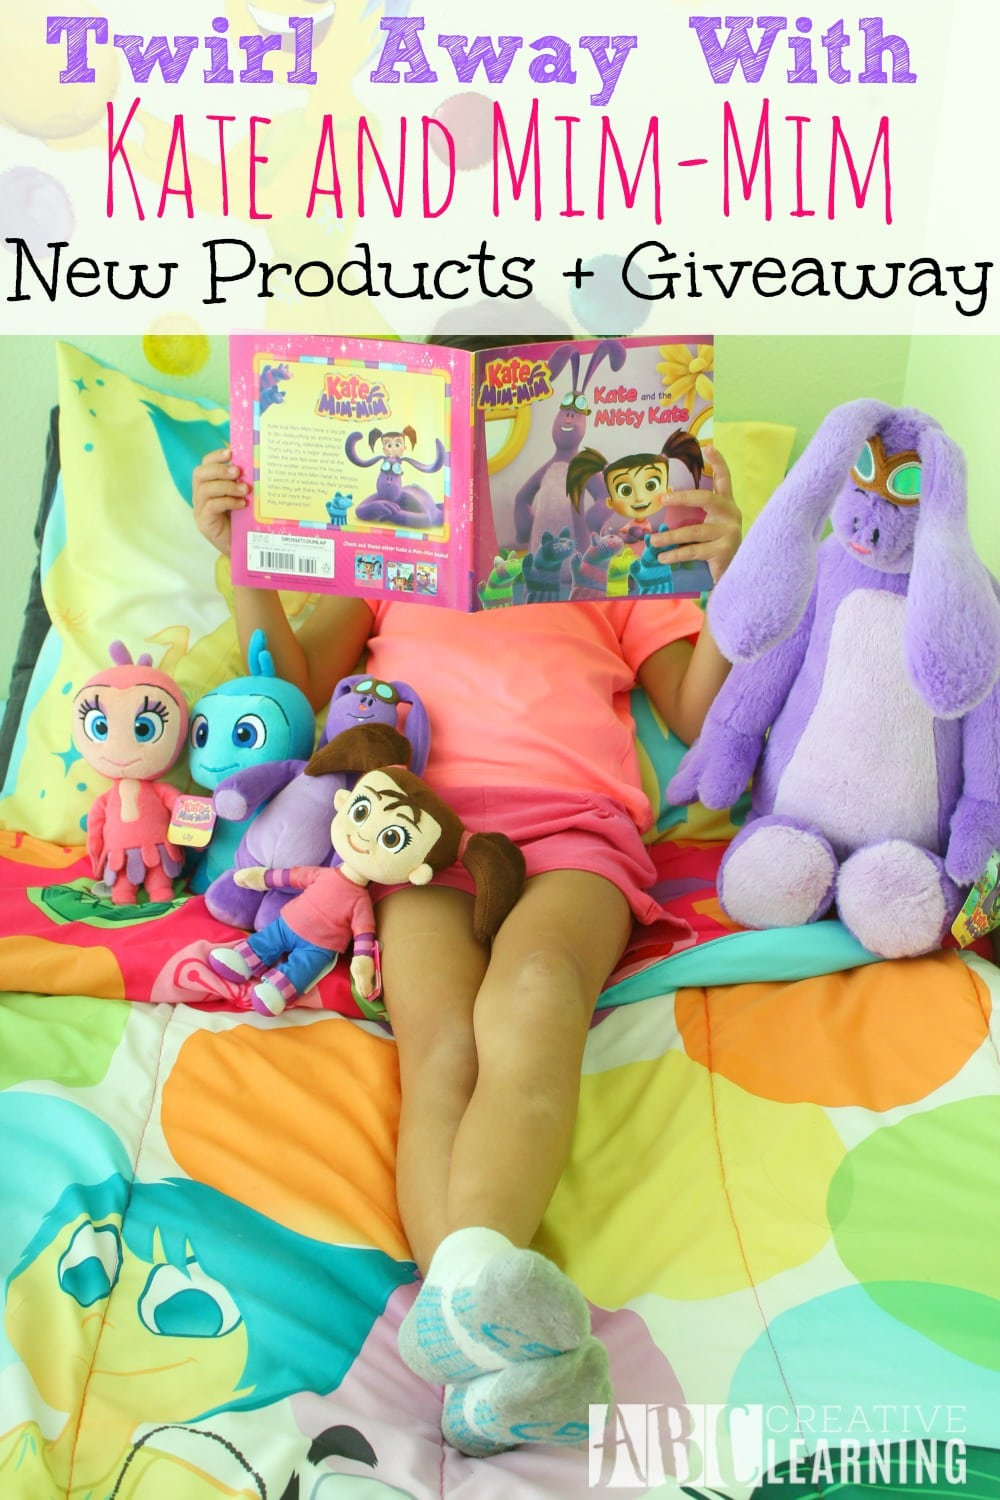 Twirl Away With Kate And Mim-Mim New Products + Giveaway